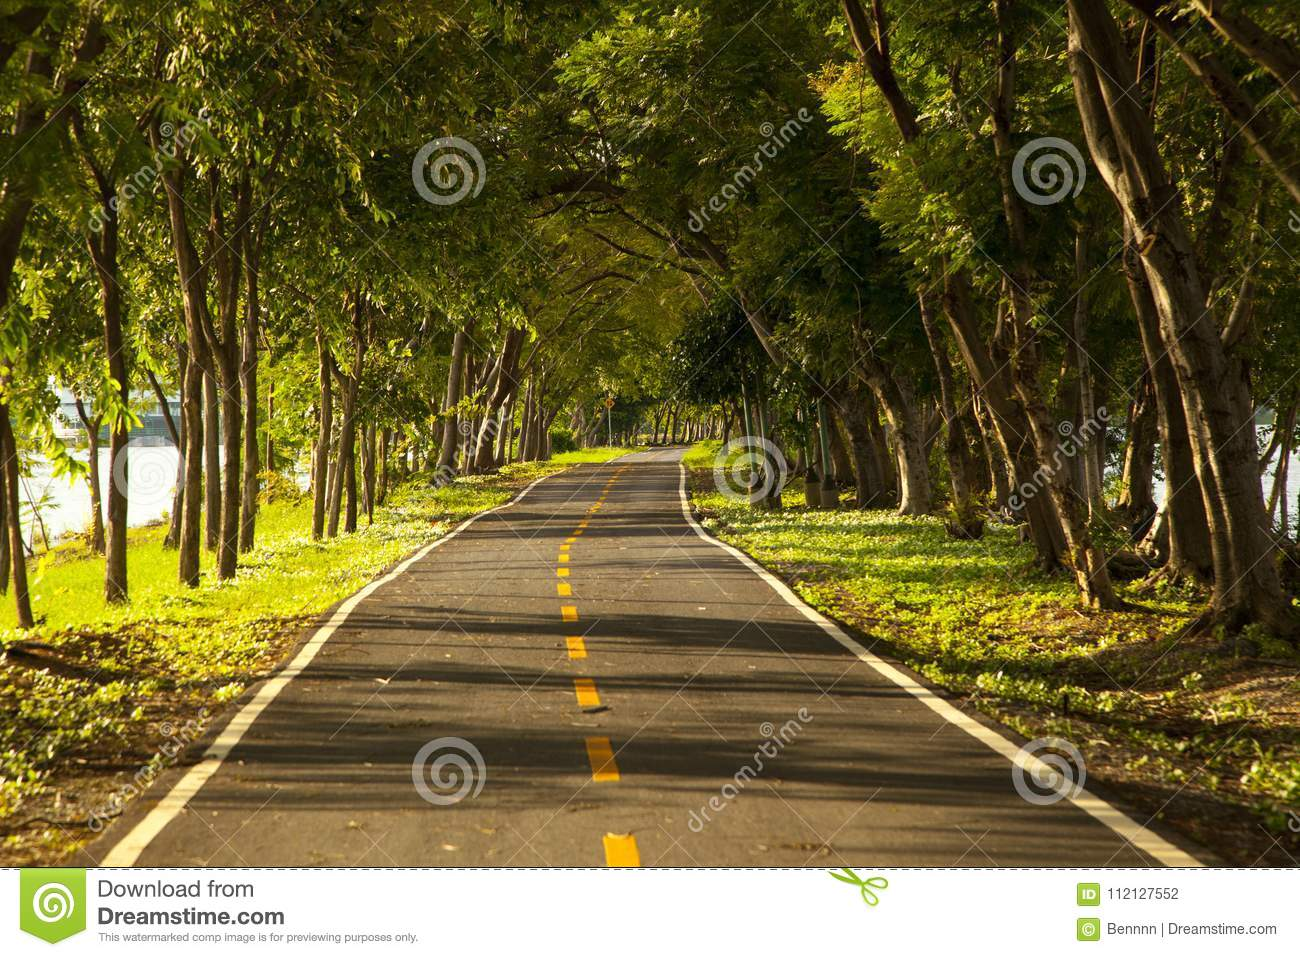 Road With Trees On Both Sides Stock Photo - Image of destinations ...